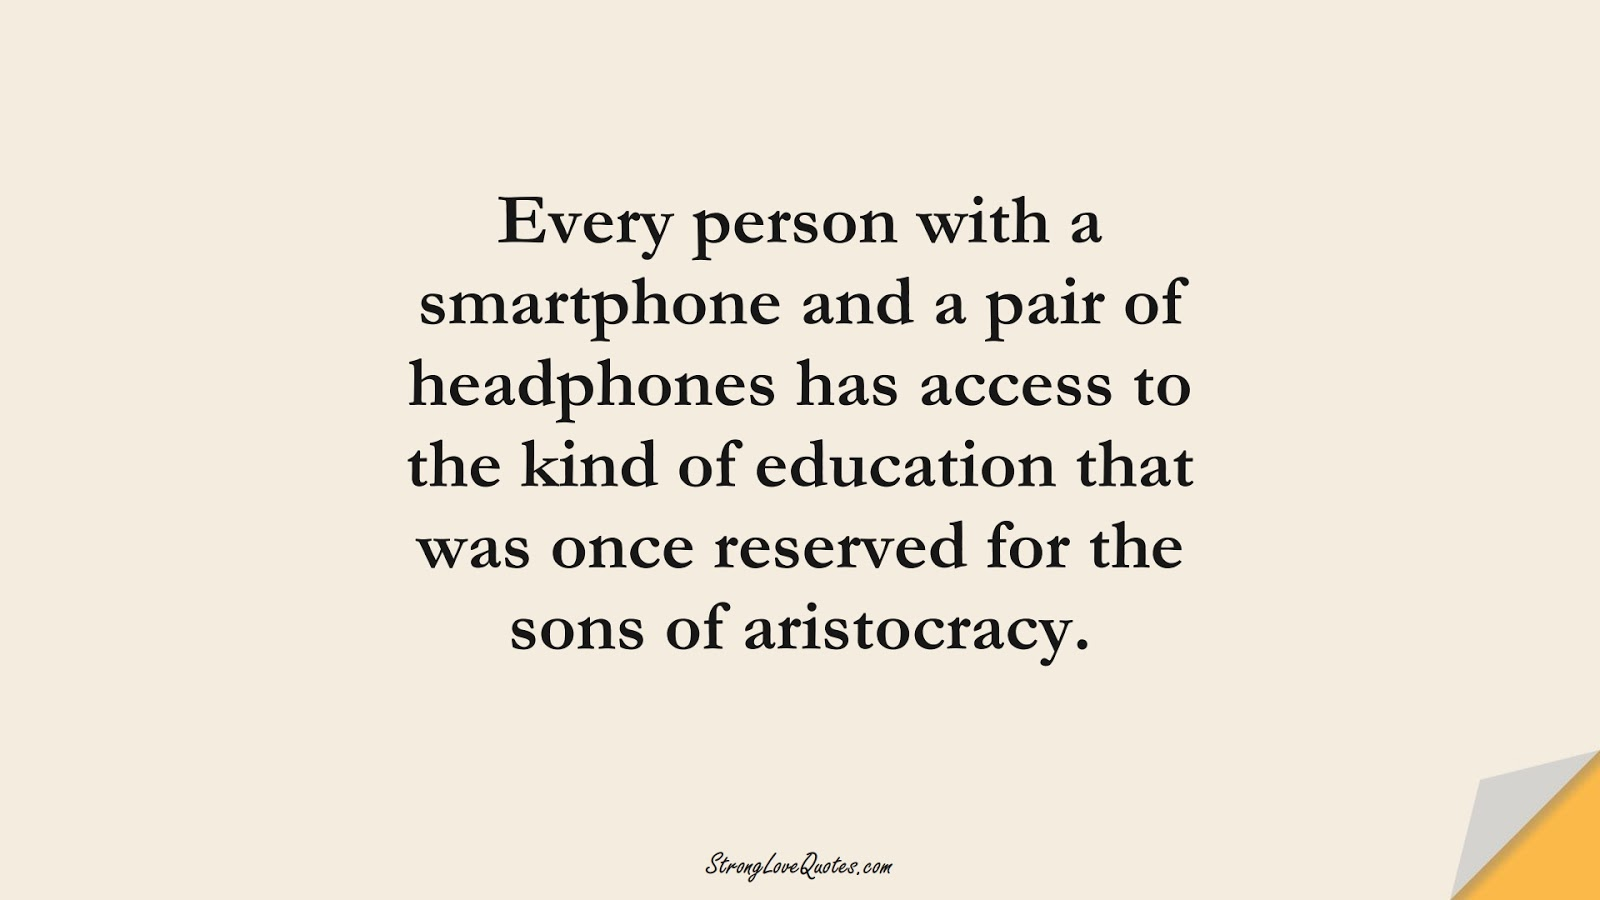 Every person with a smartphone and a pair of headphones has access to the kind of education that was once reserved for the sons of aristocracy.FALSE